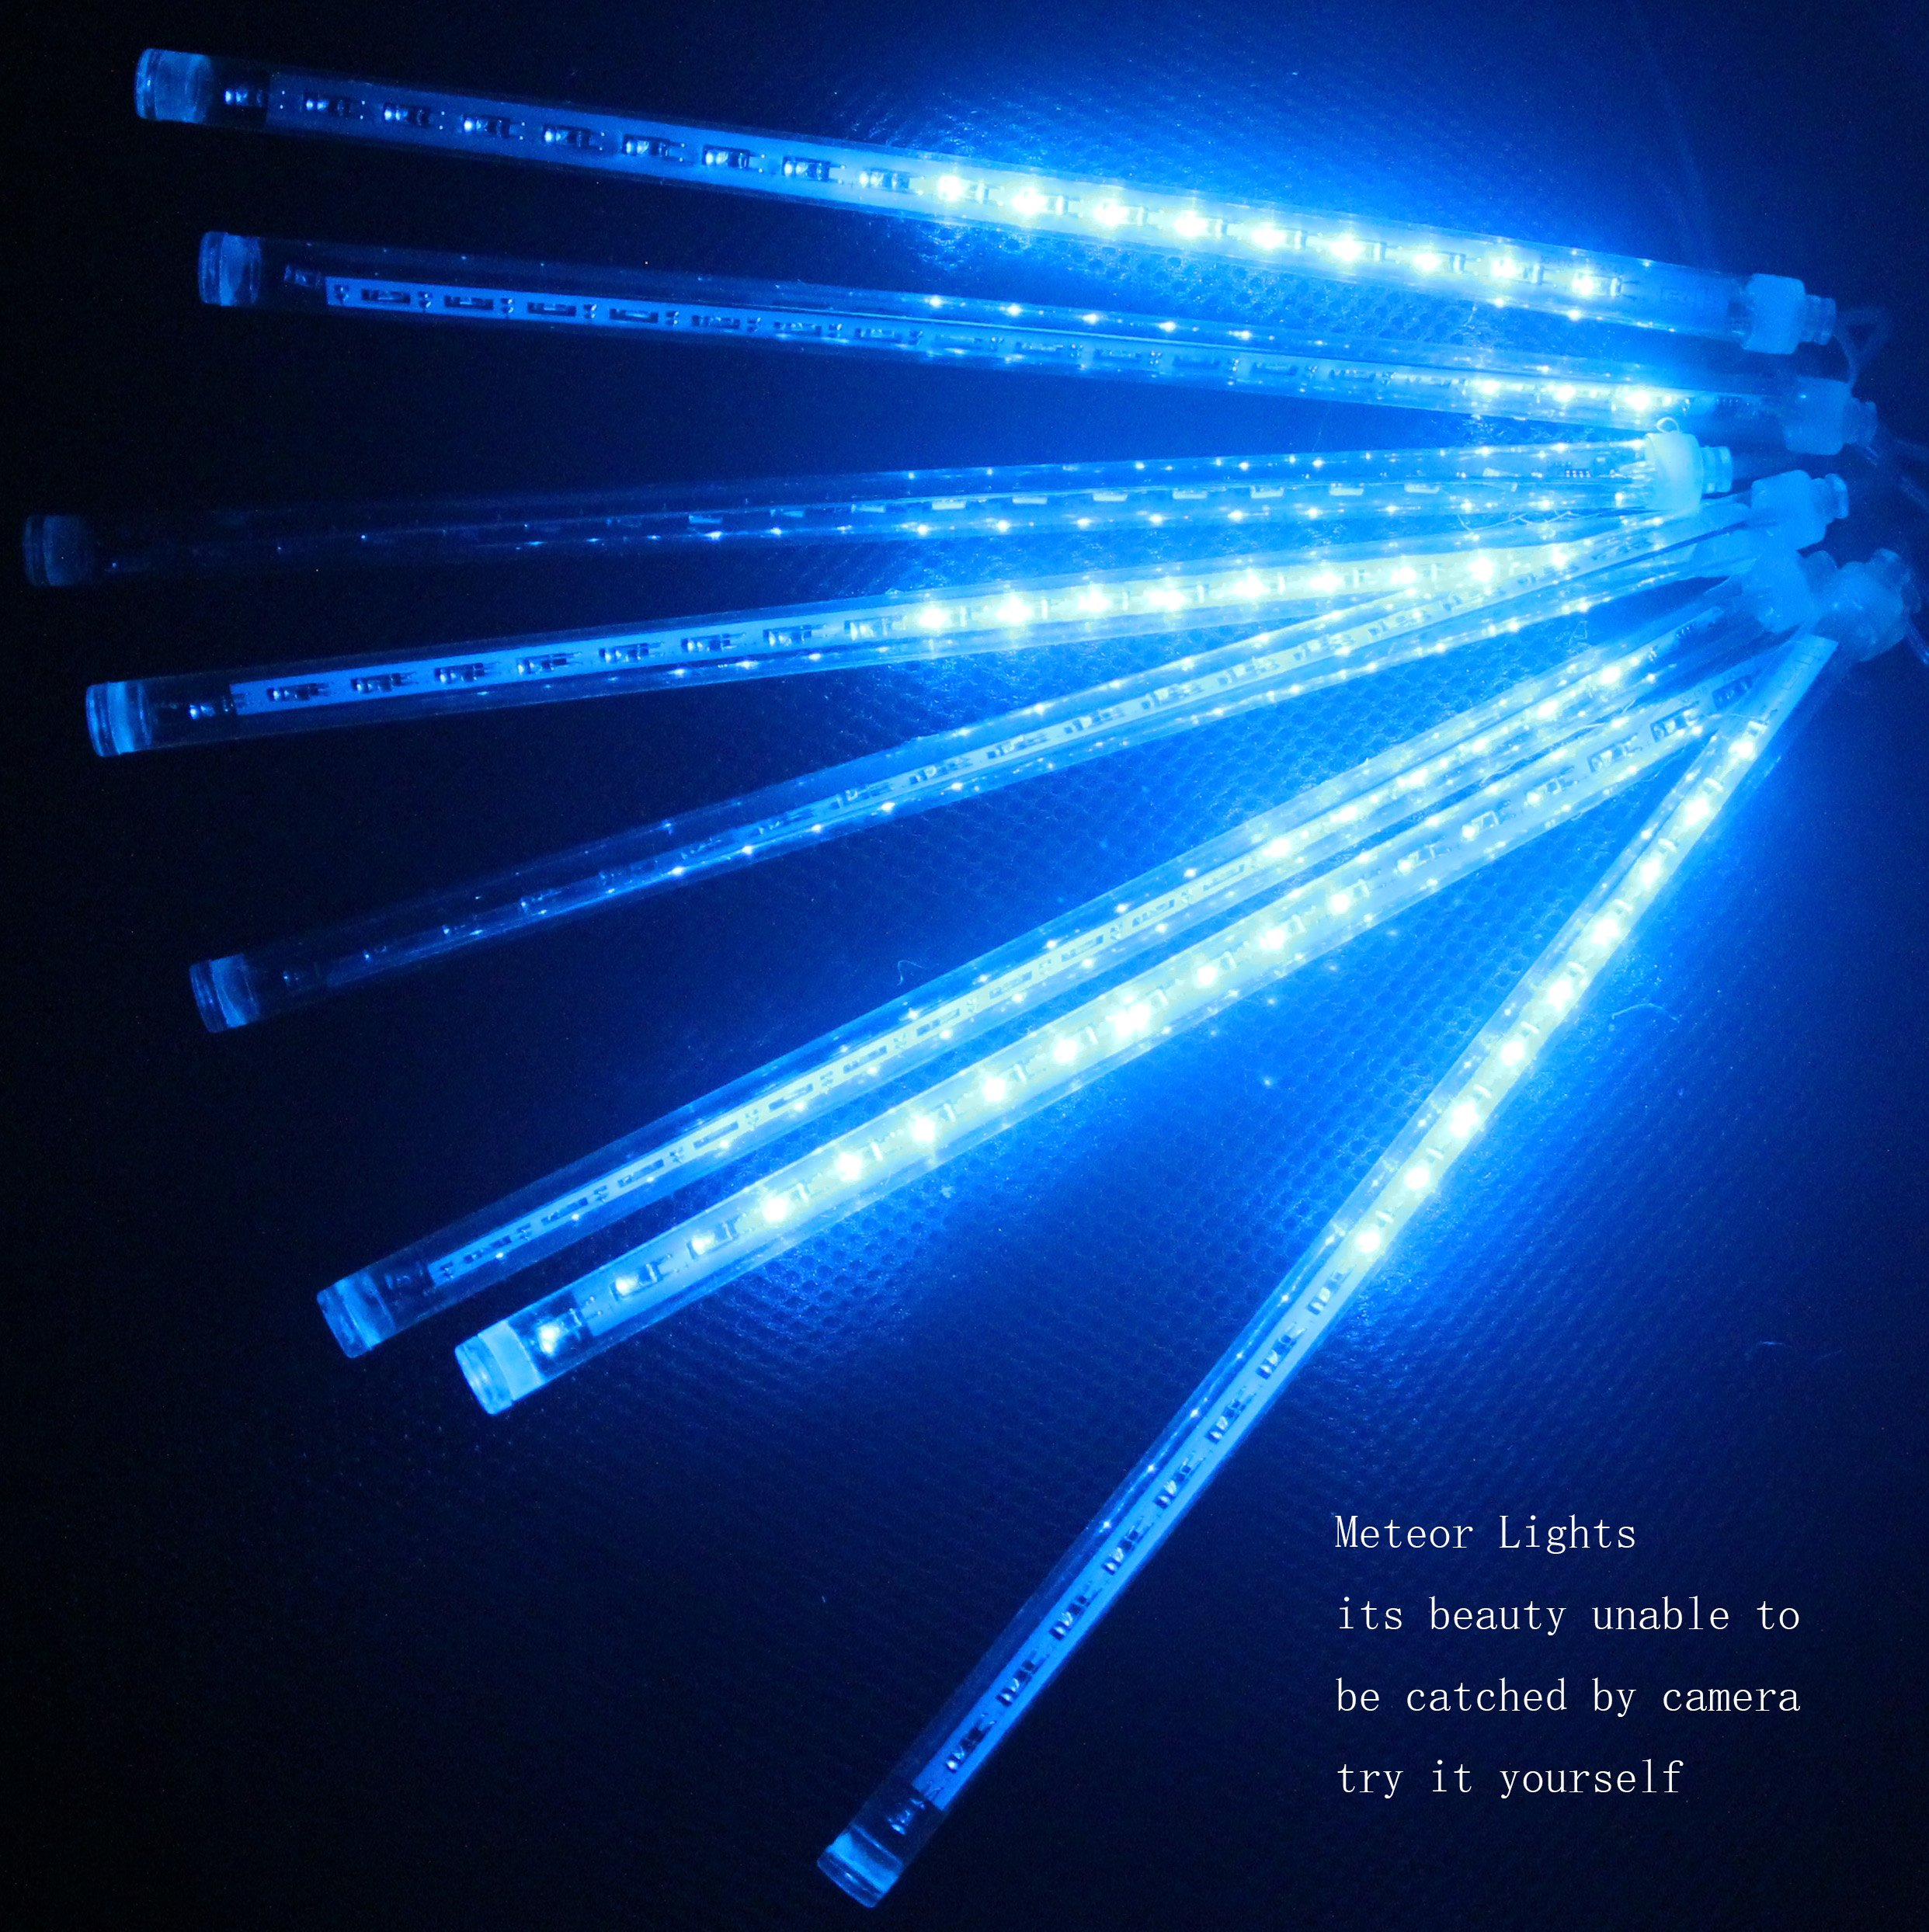 CDL 10sets Meteor Icicle Snow Falling Rain Drop 30cm 8 Tubes 144 LED Shower Christmas Raindrop Cascading Lights for Wedding Party Holiday Xmas Halloween Home Garden Tree Decoration (10, Blue) by CDL-METEOR LIGHTS